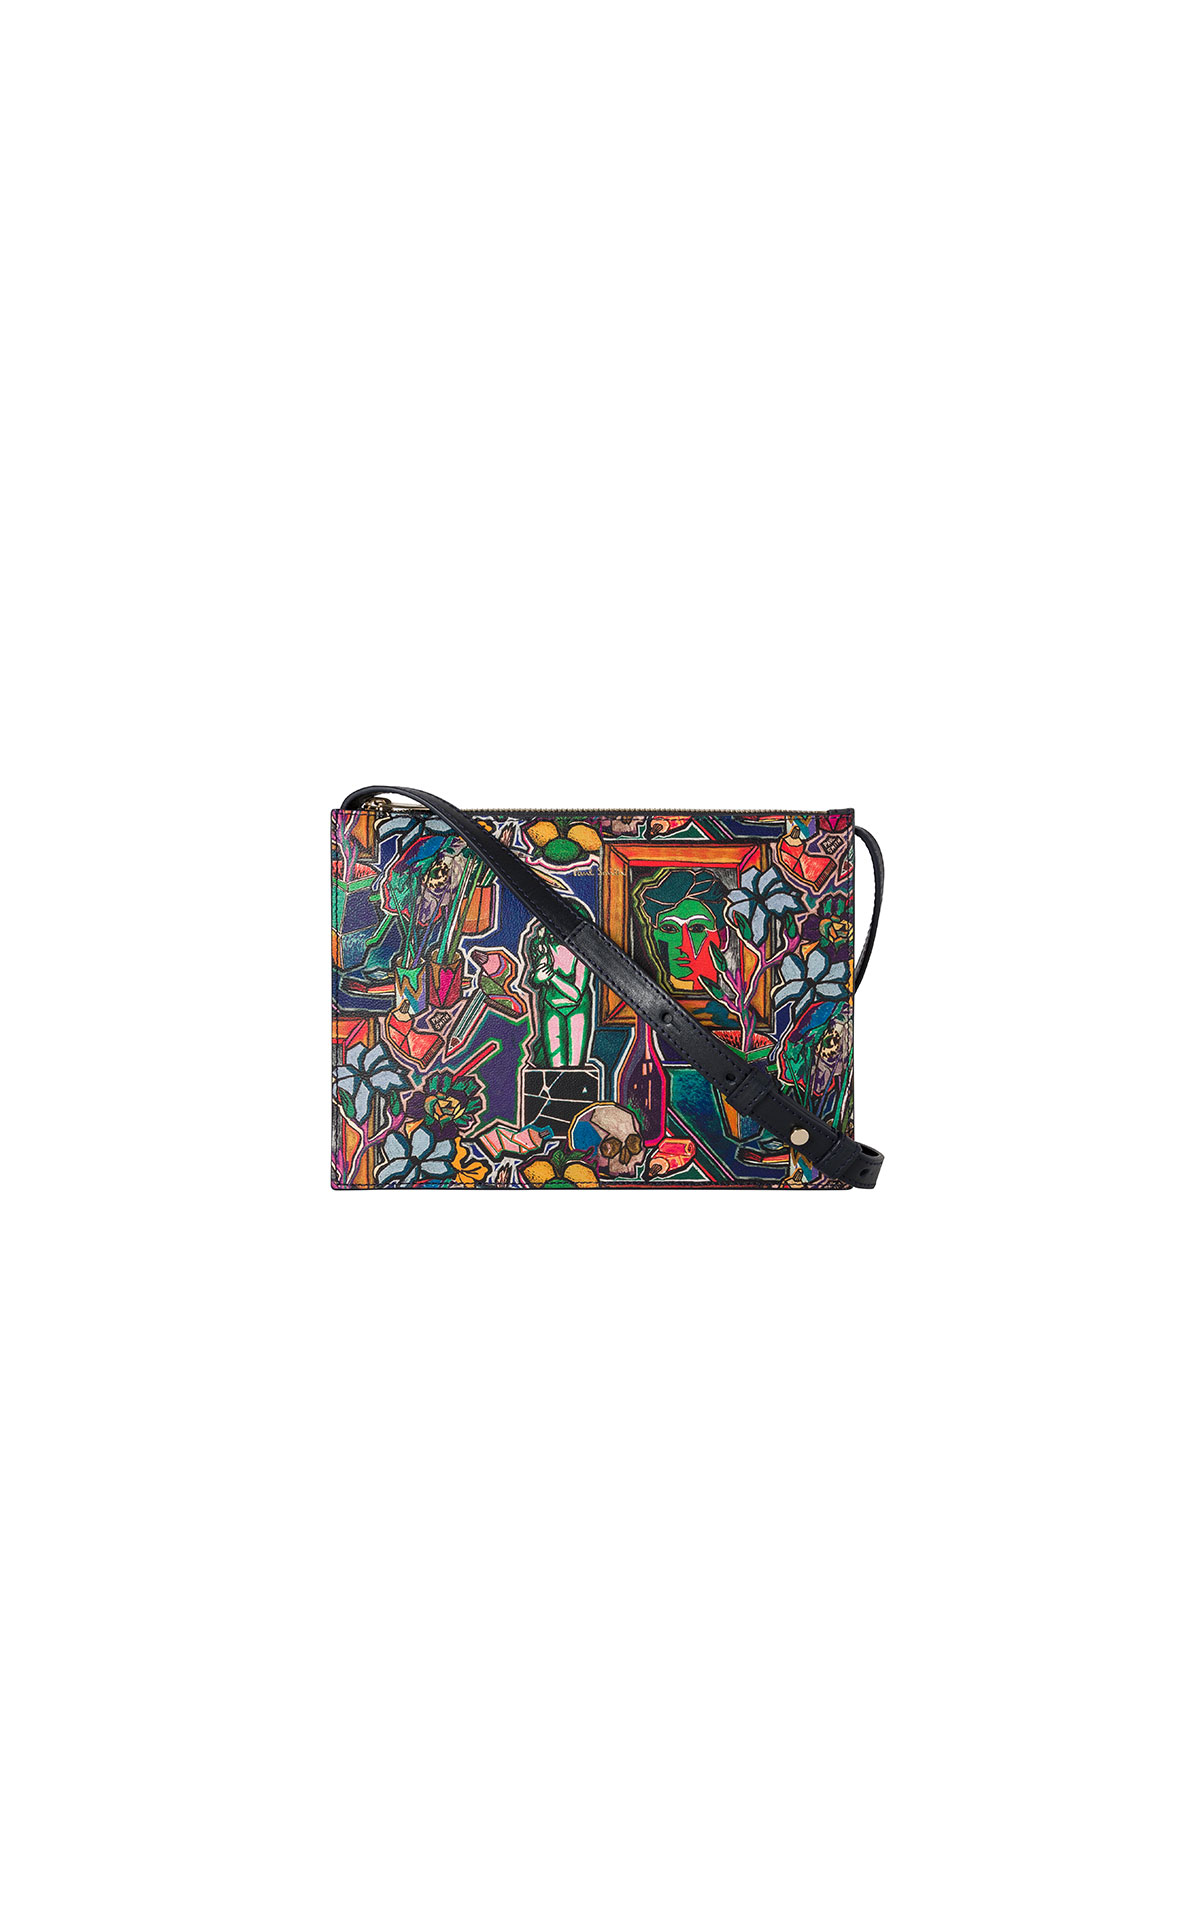 Paul Smith Women's Artist Studio Crossbody Bag at The Bicester Village Shopping Collection